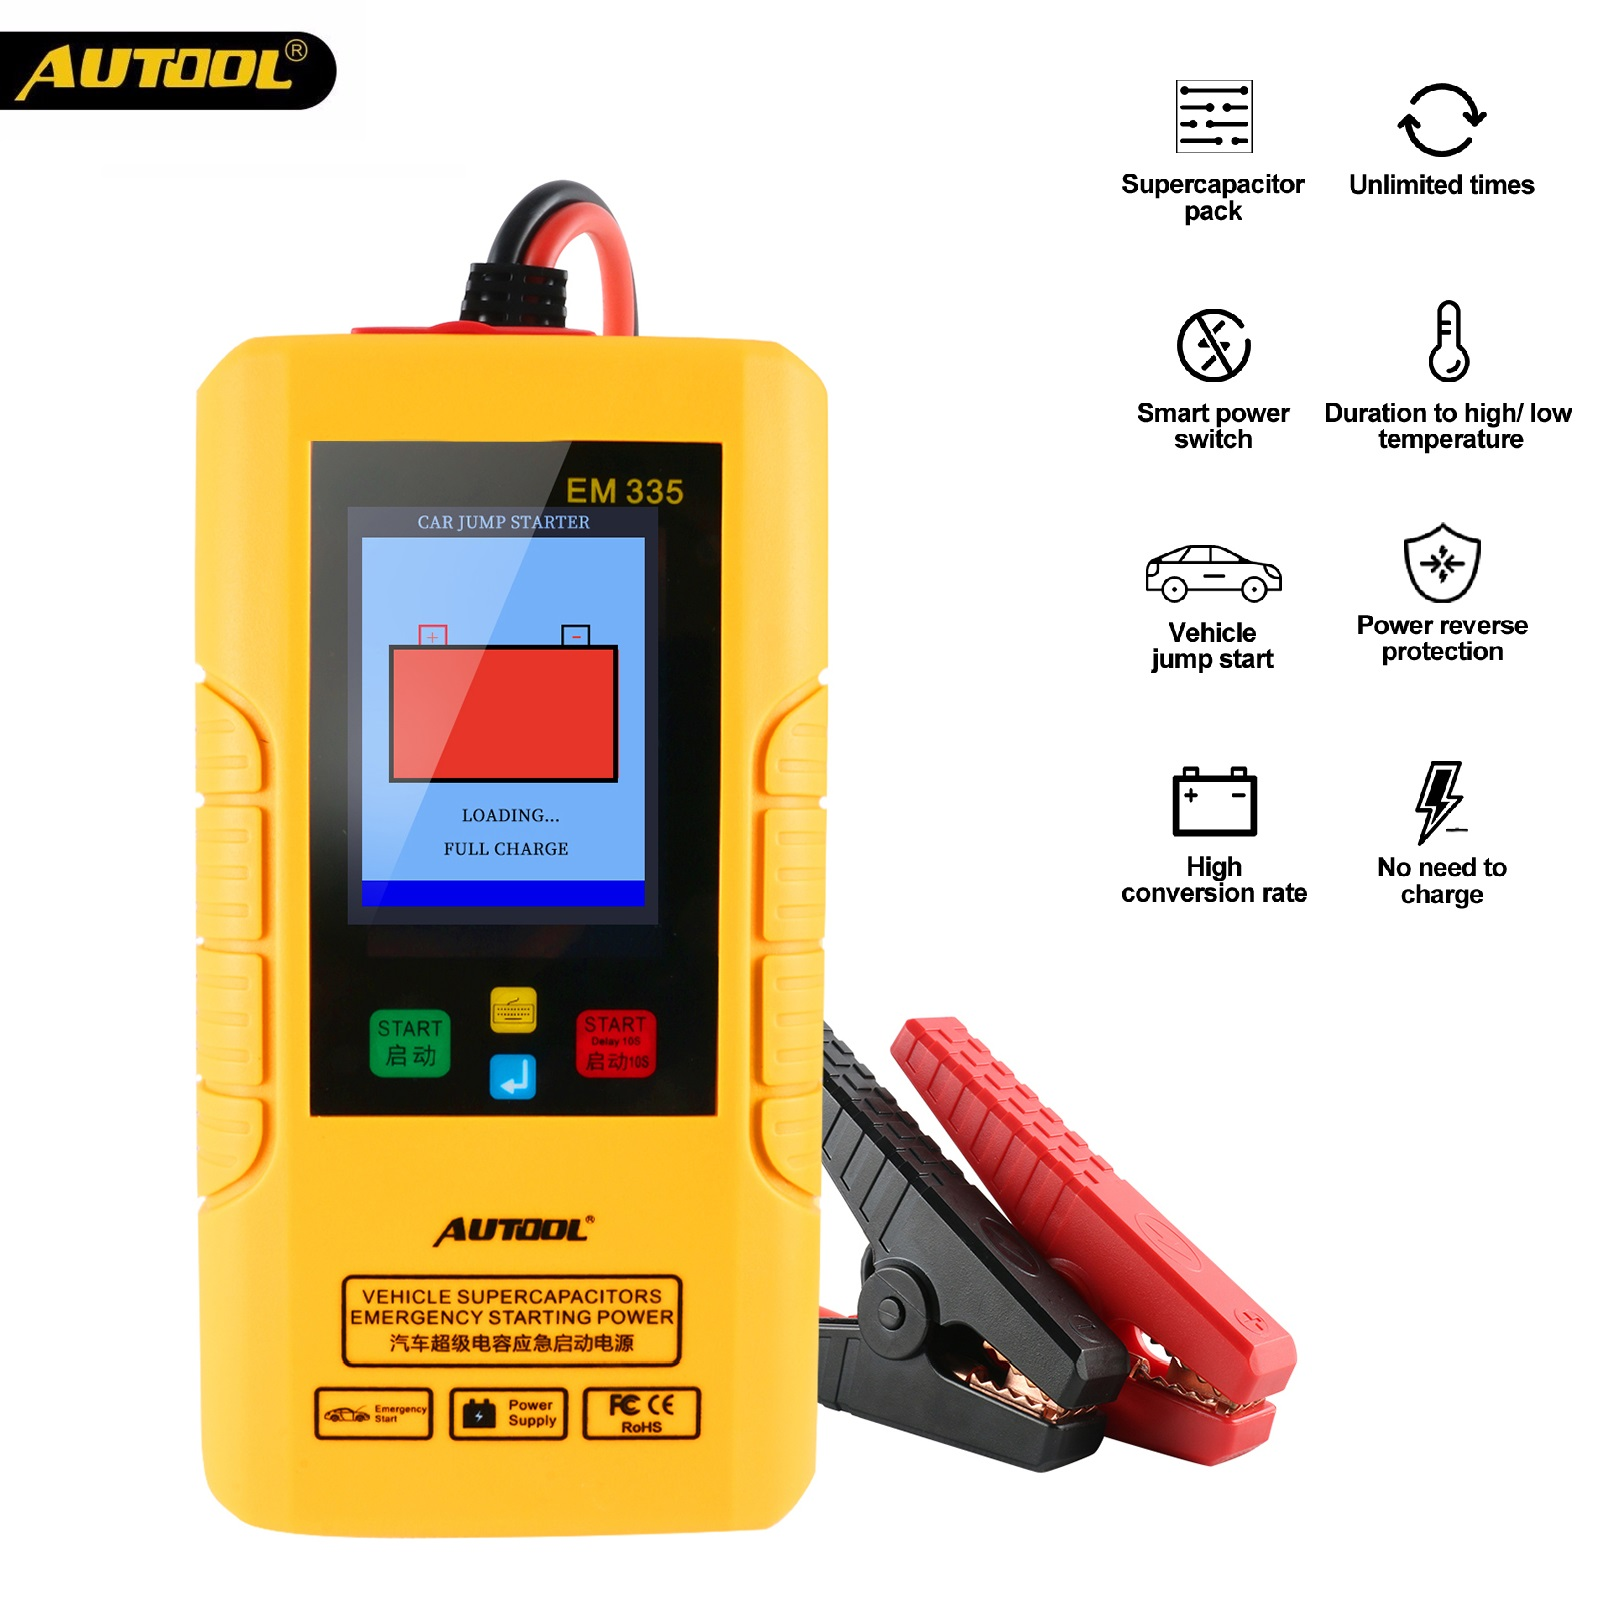 Autool EM335 Car Jump Starter Unlimited Use 12V Batteryless Portable Car Emergency Power Bank with Ultracapacitor Dropshippng